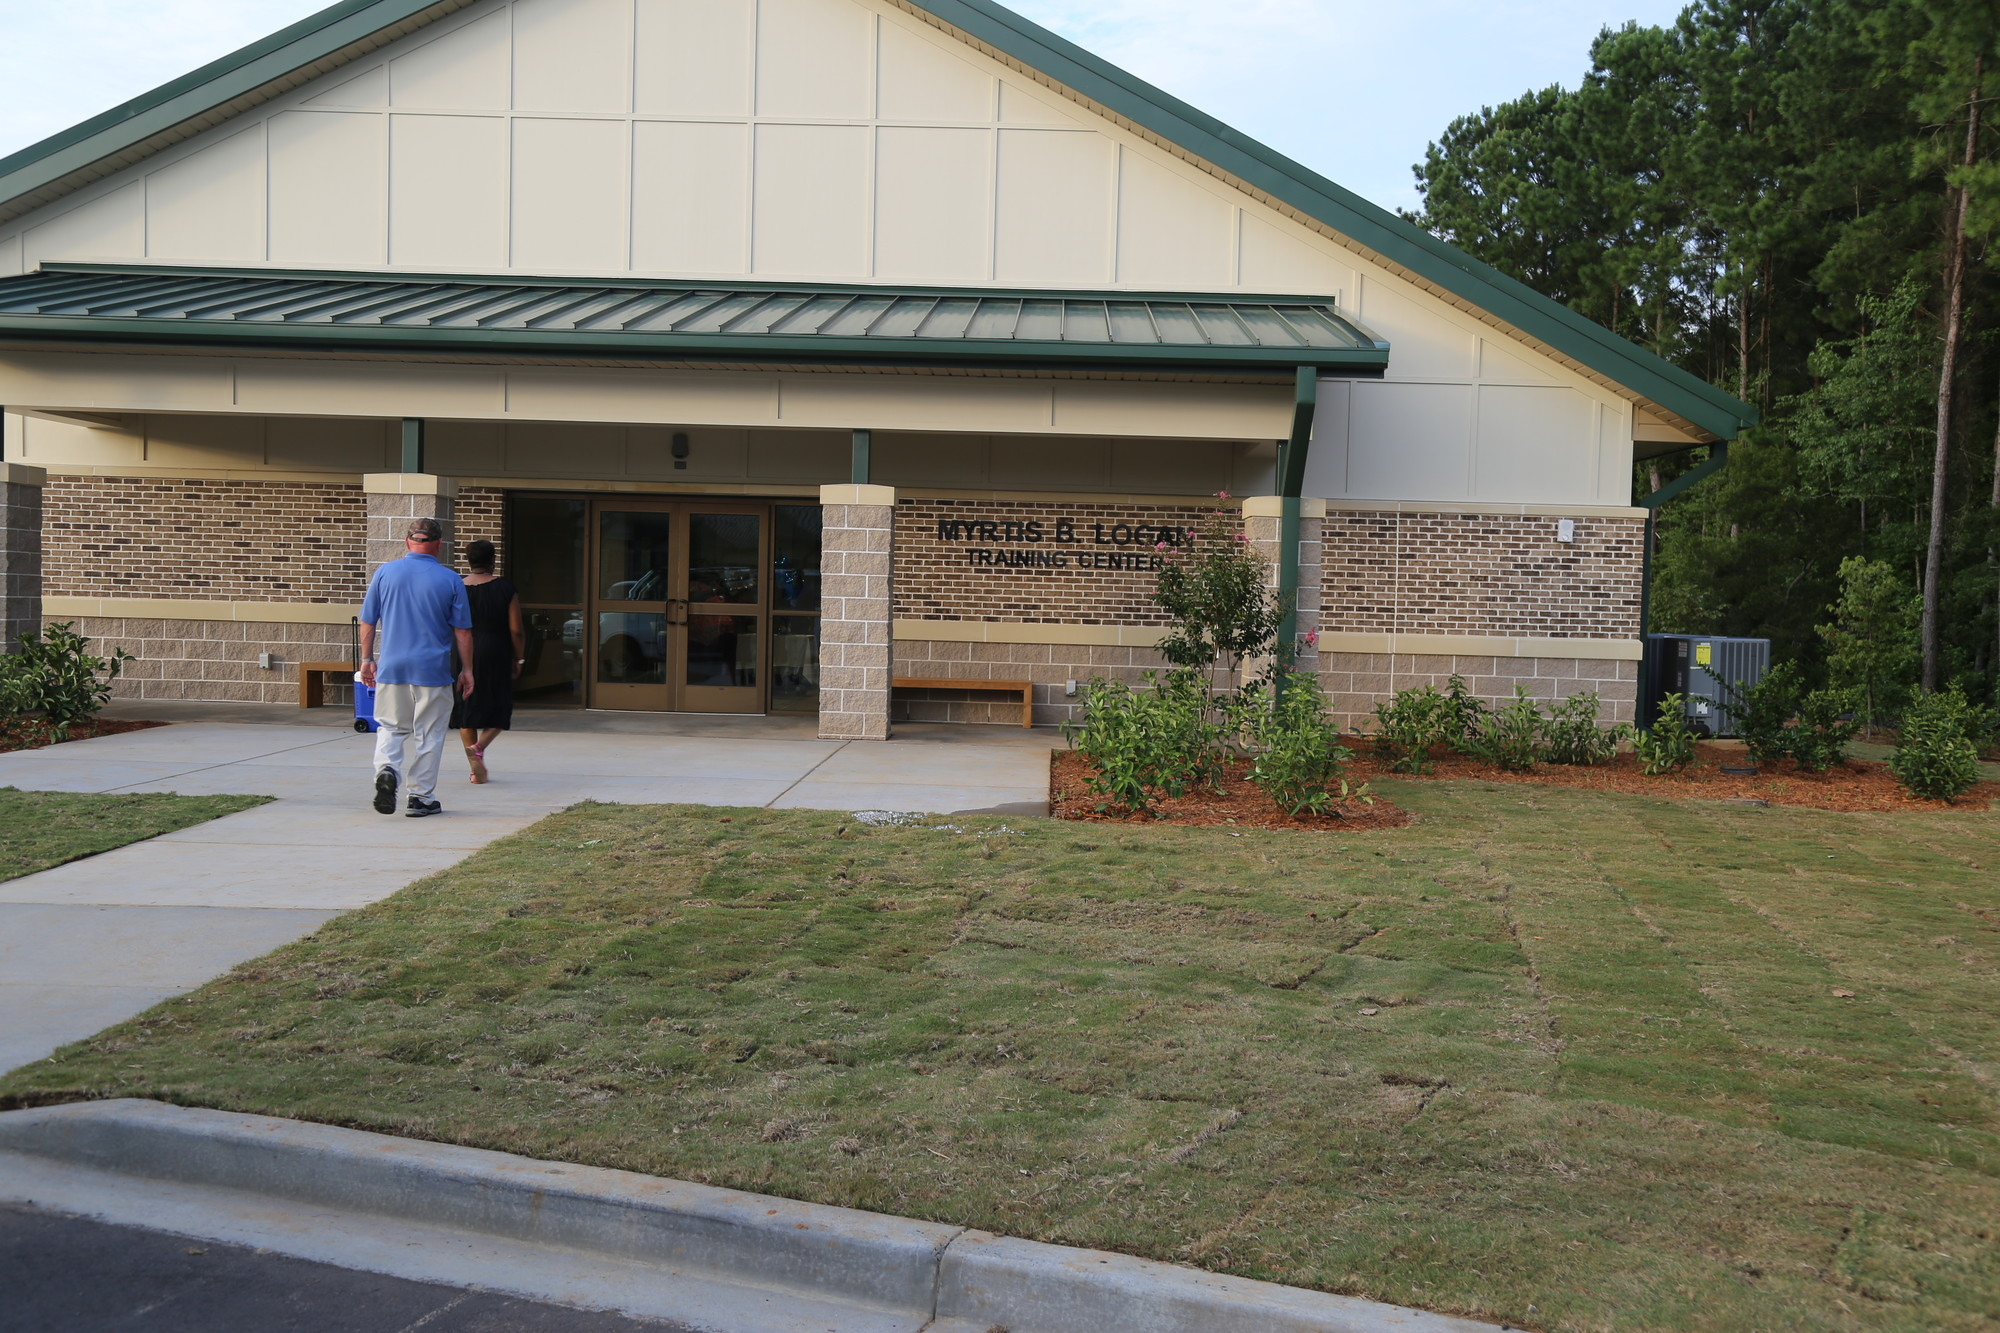 New Facility Offers New Day For Mental Health Services For Sumter